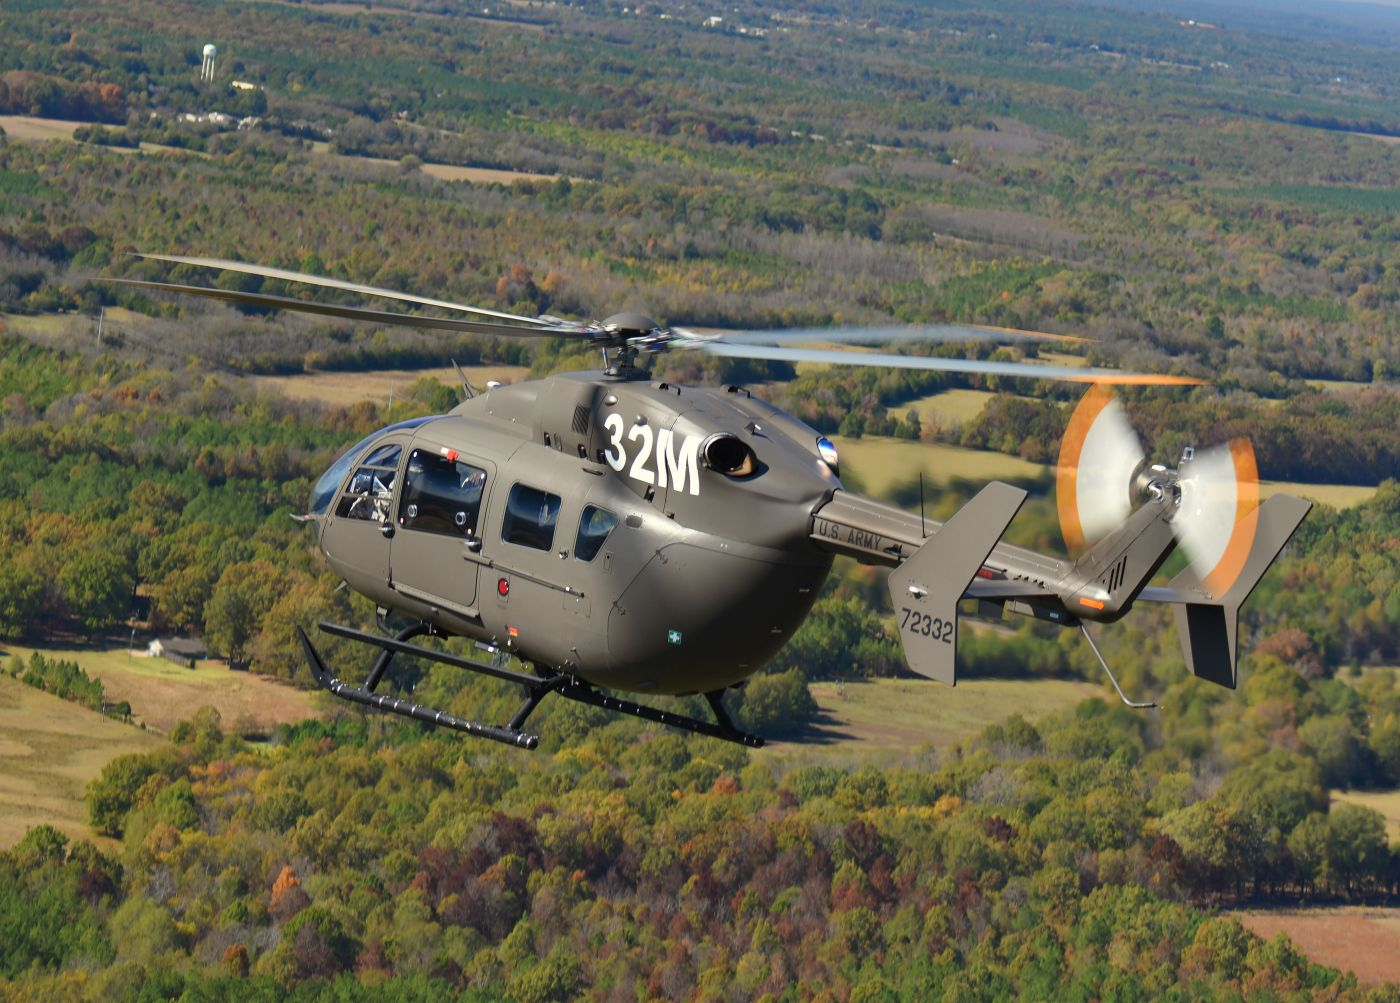 The U.S. Army competitively selected the UH-72A Lakota as its Light Utility Helicopter in 2006. The aircraft became the Army's primary training helicopter under the terms of the 2013 Aviation Restructure Initiative. Airbus Photo